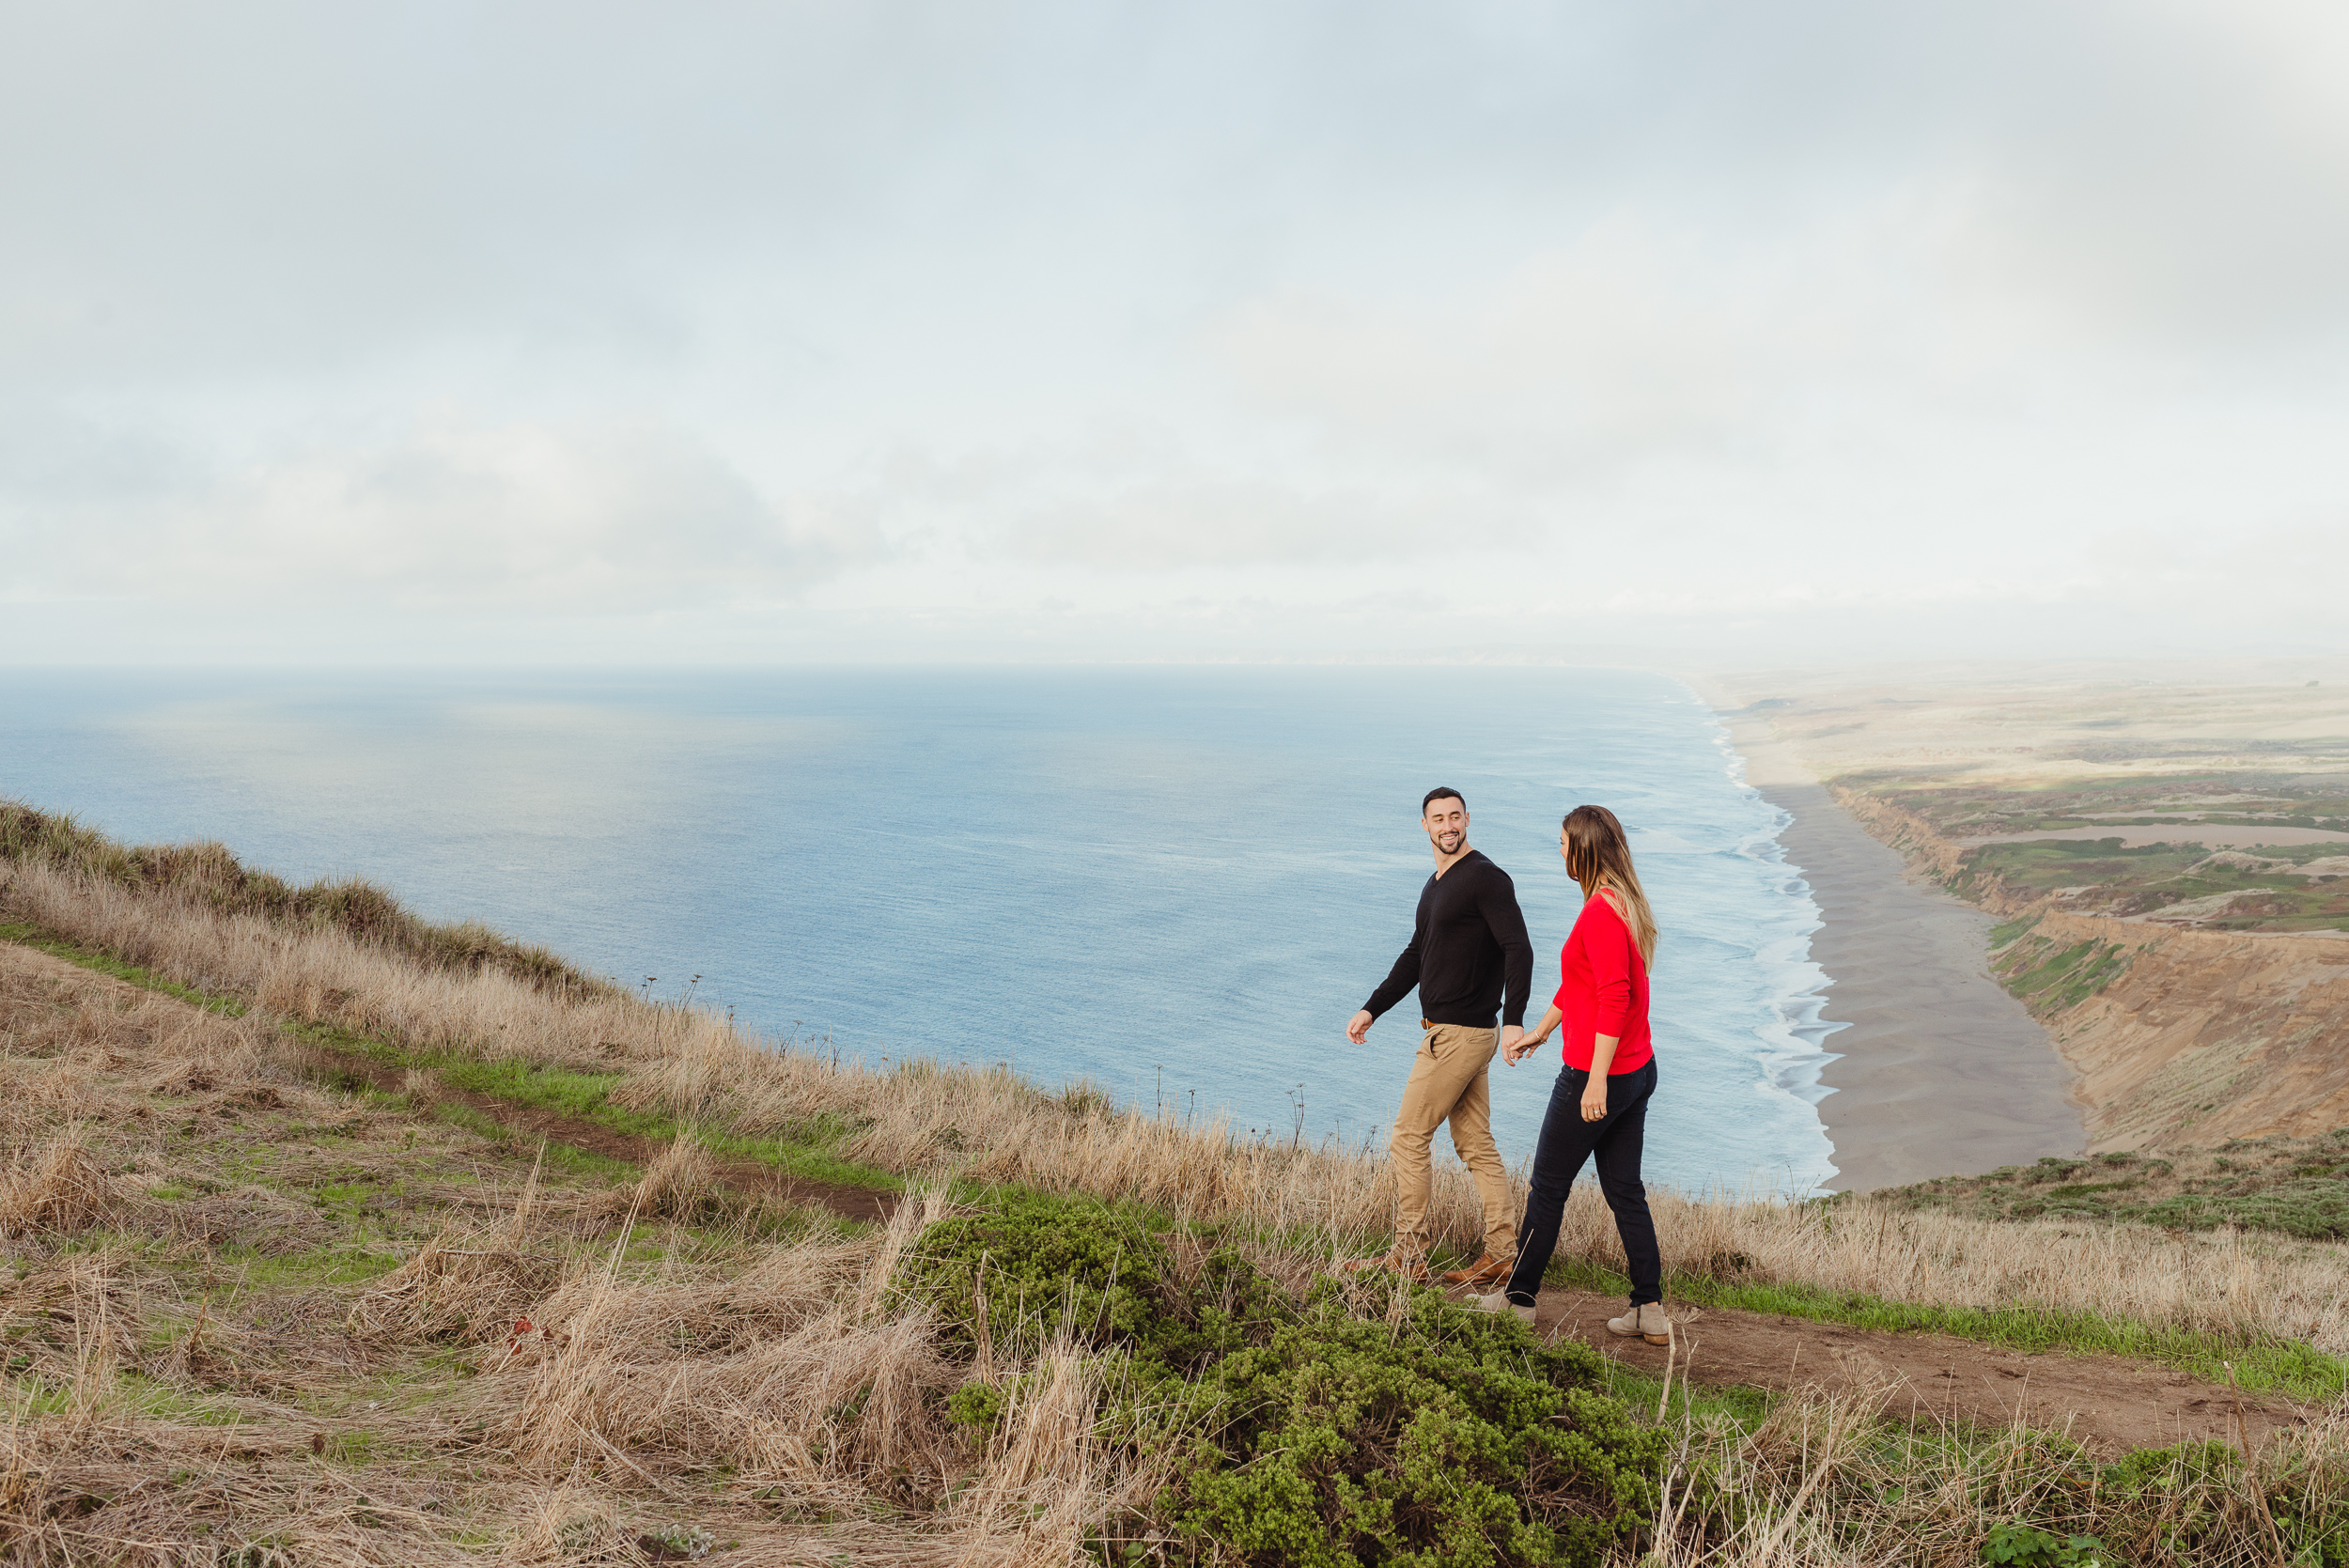 point-reyes-national-seashore-engagement-session-vivianchen-024.jpg